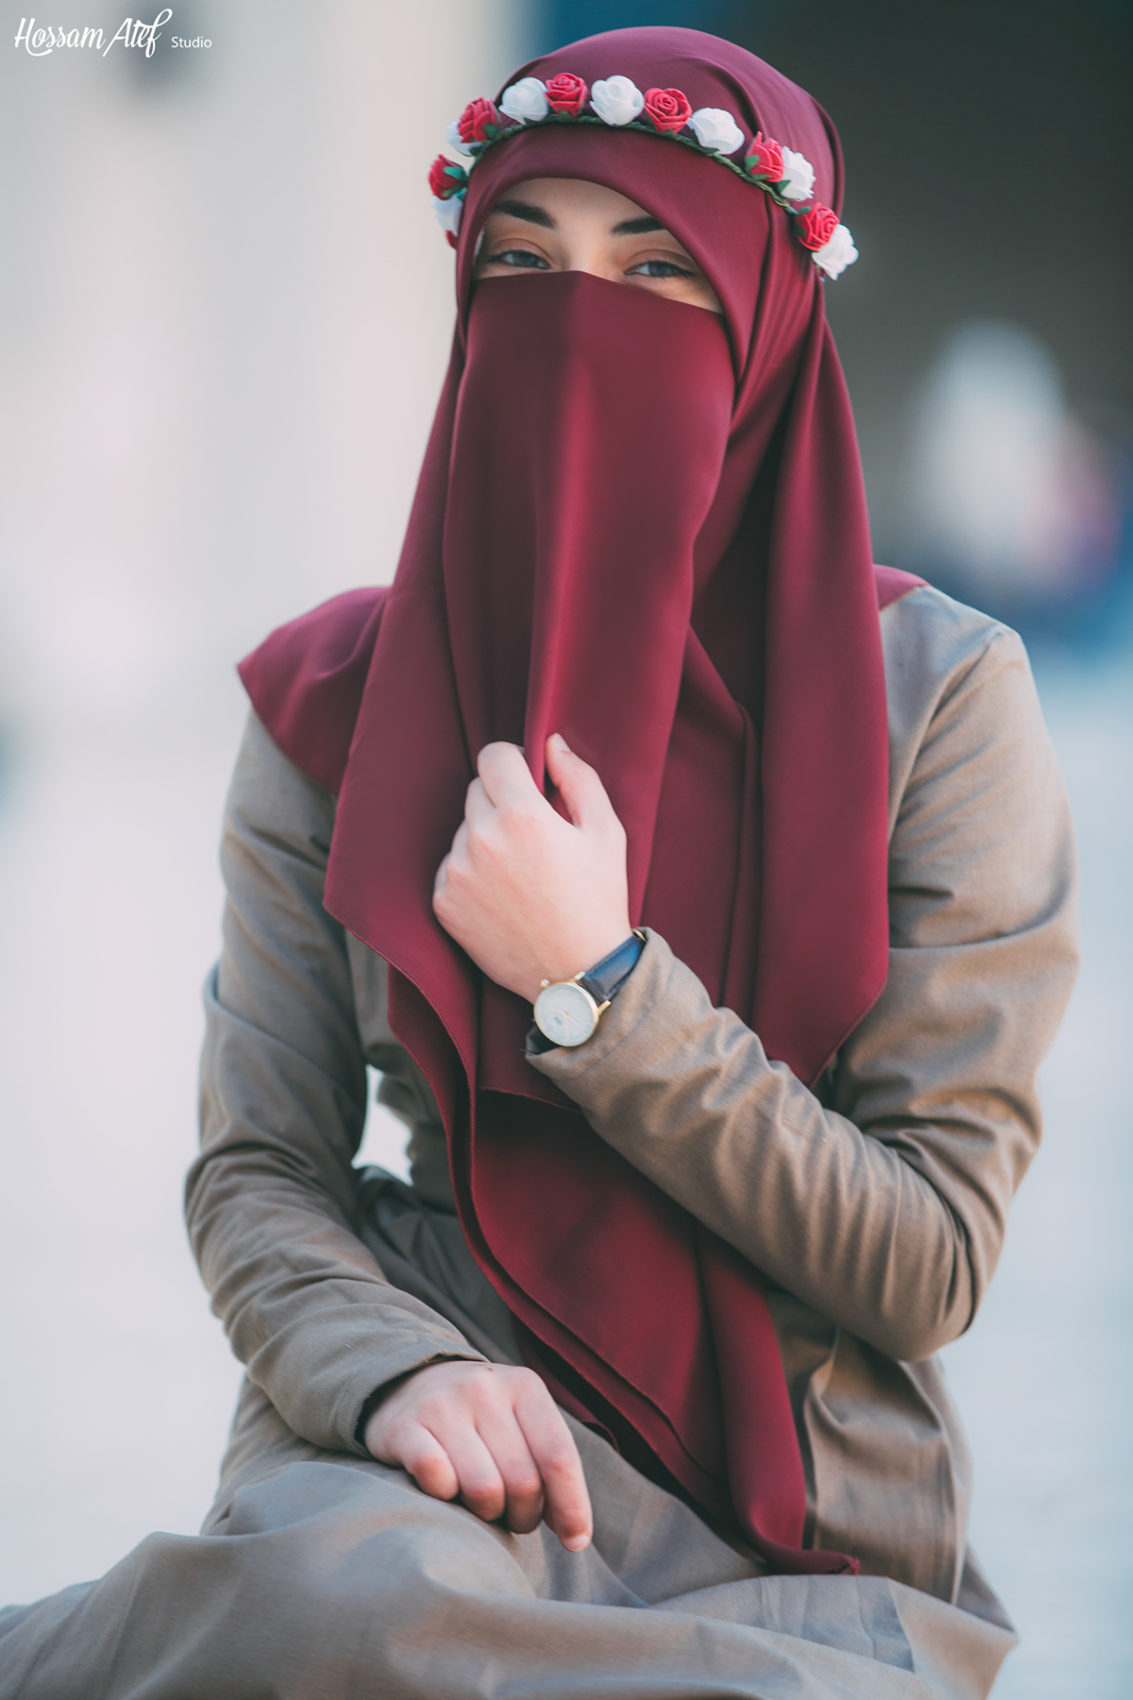 elsberry single muslim girls Life after 30 as a single muslim woman the reality is that there are more single muslim women than males, and you should look for a guy who is loving and kind.